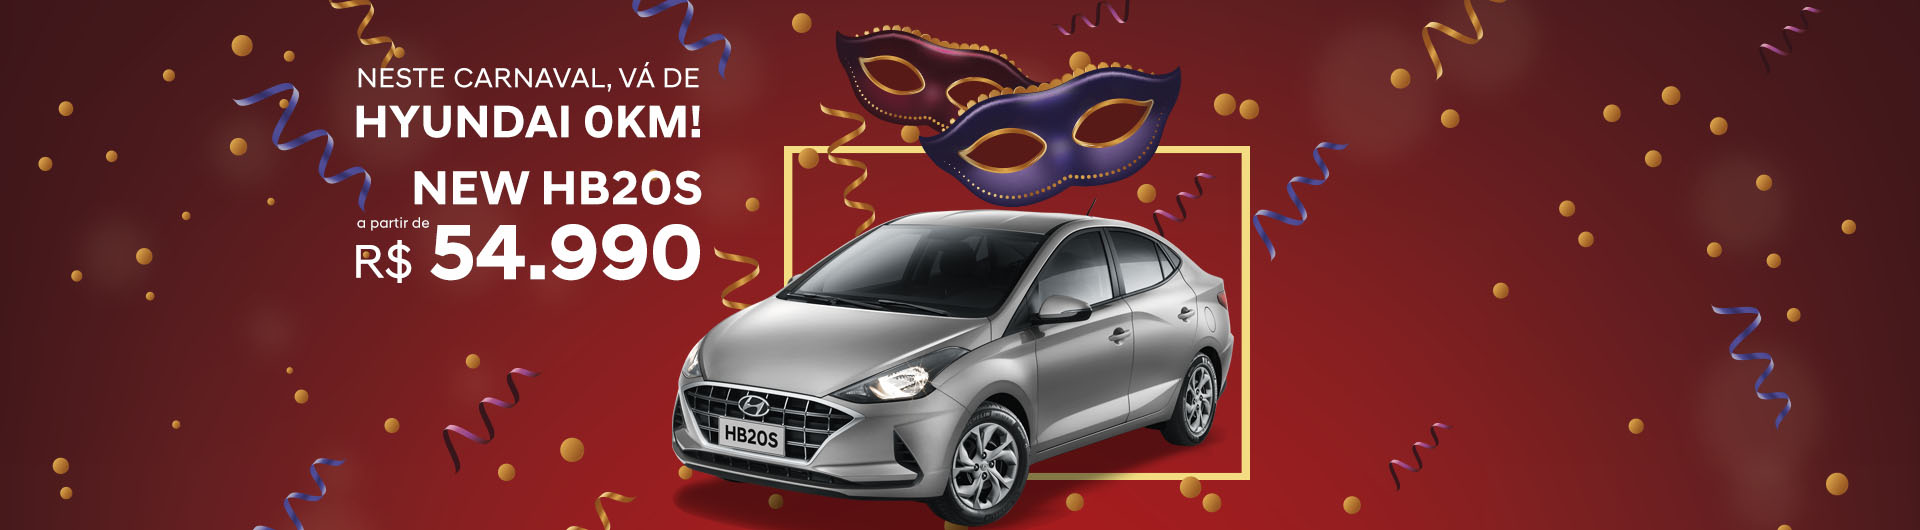 CARNAVAL LEAUTO 2020 - HB20S